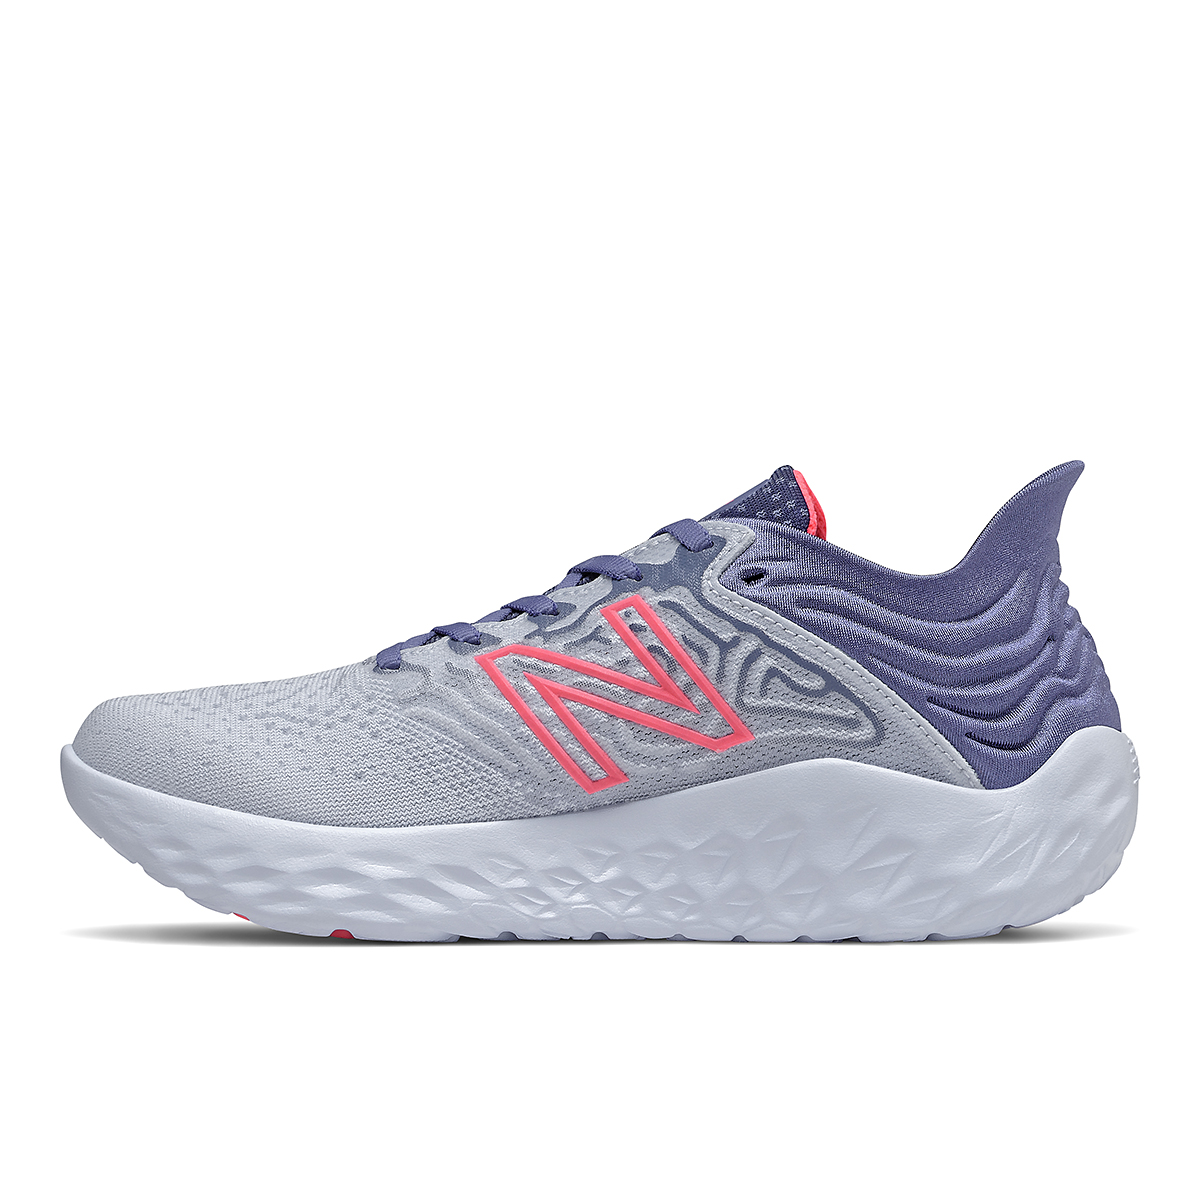 Women's New Balance Beacon V3 Running Shoe, , large, image 2